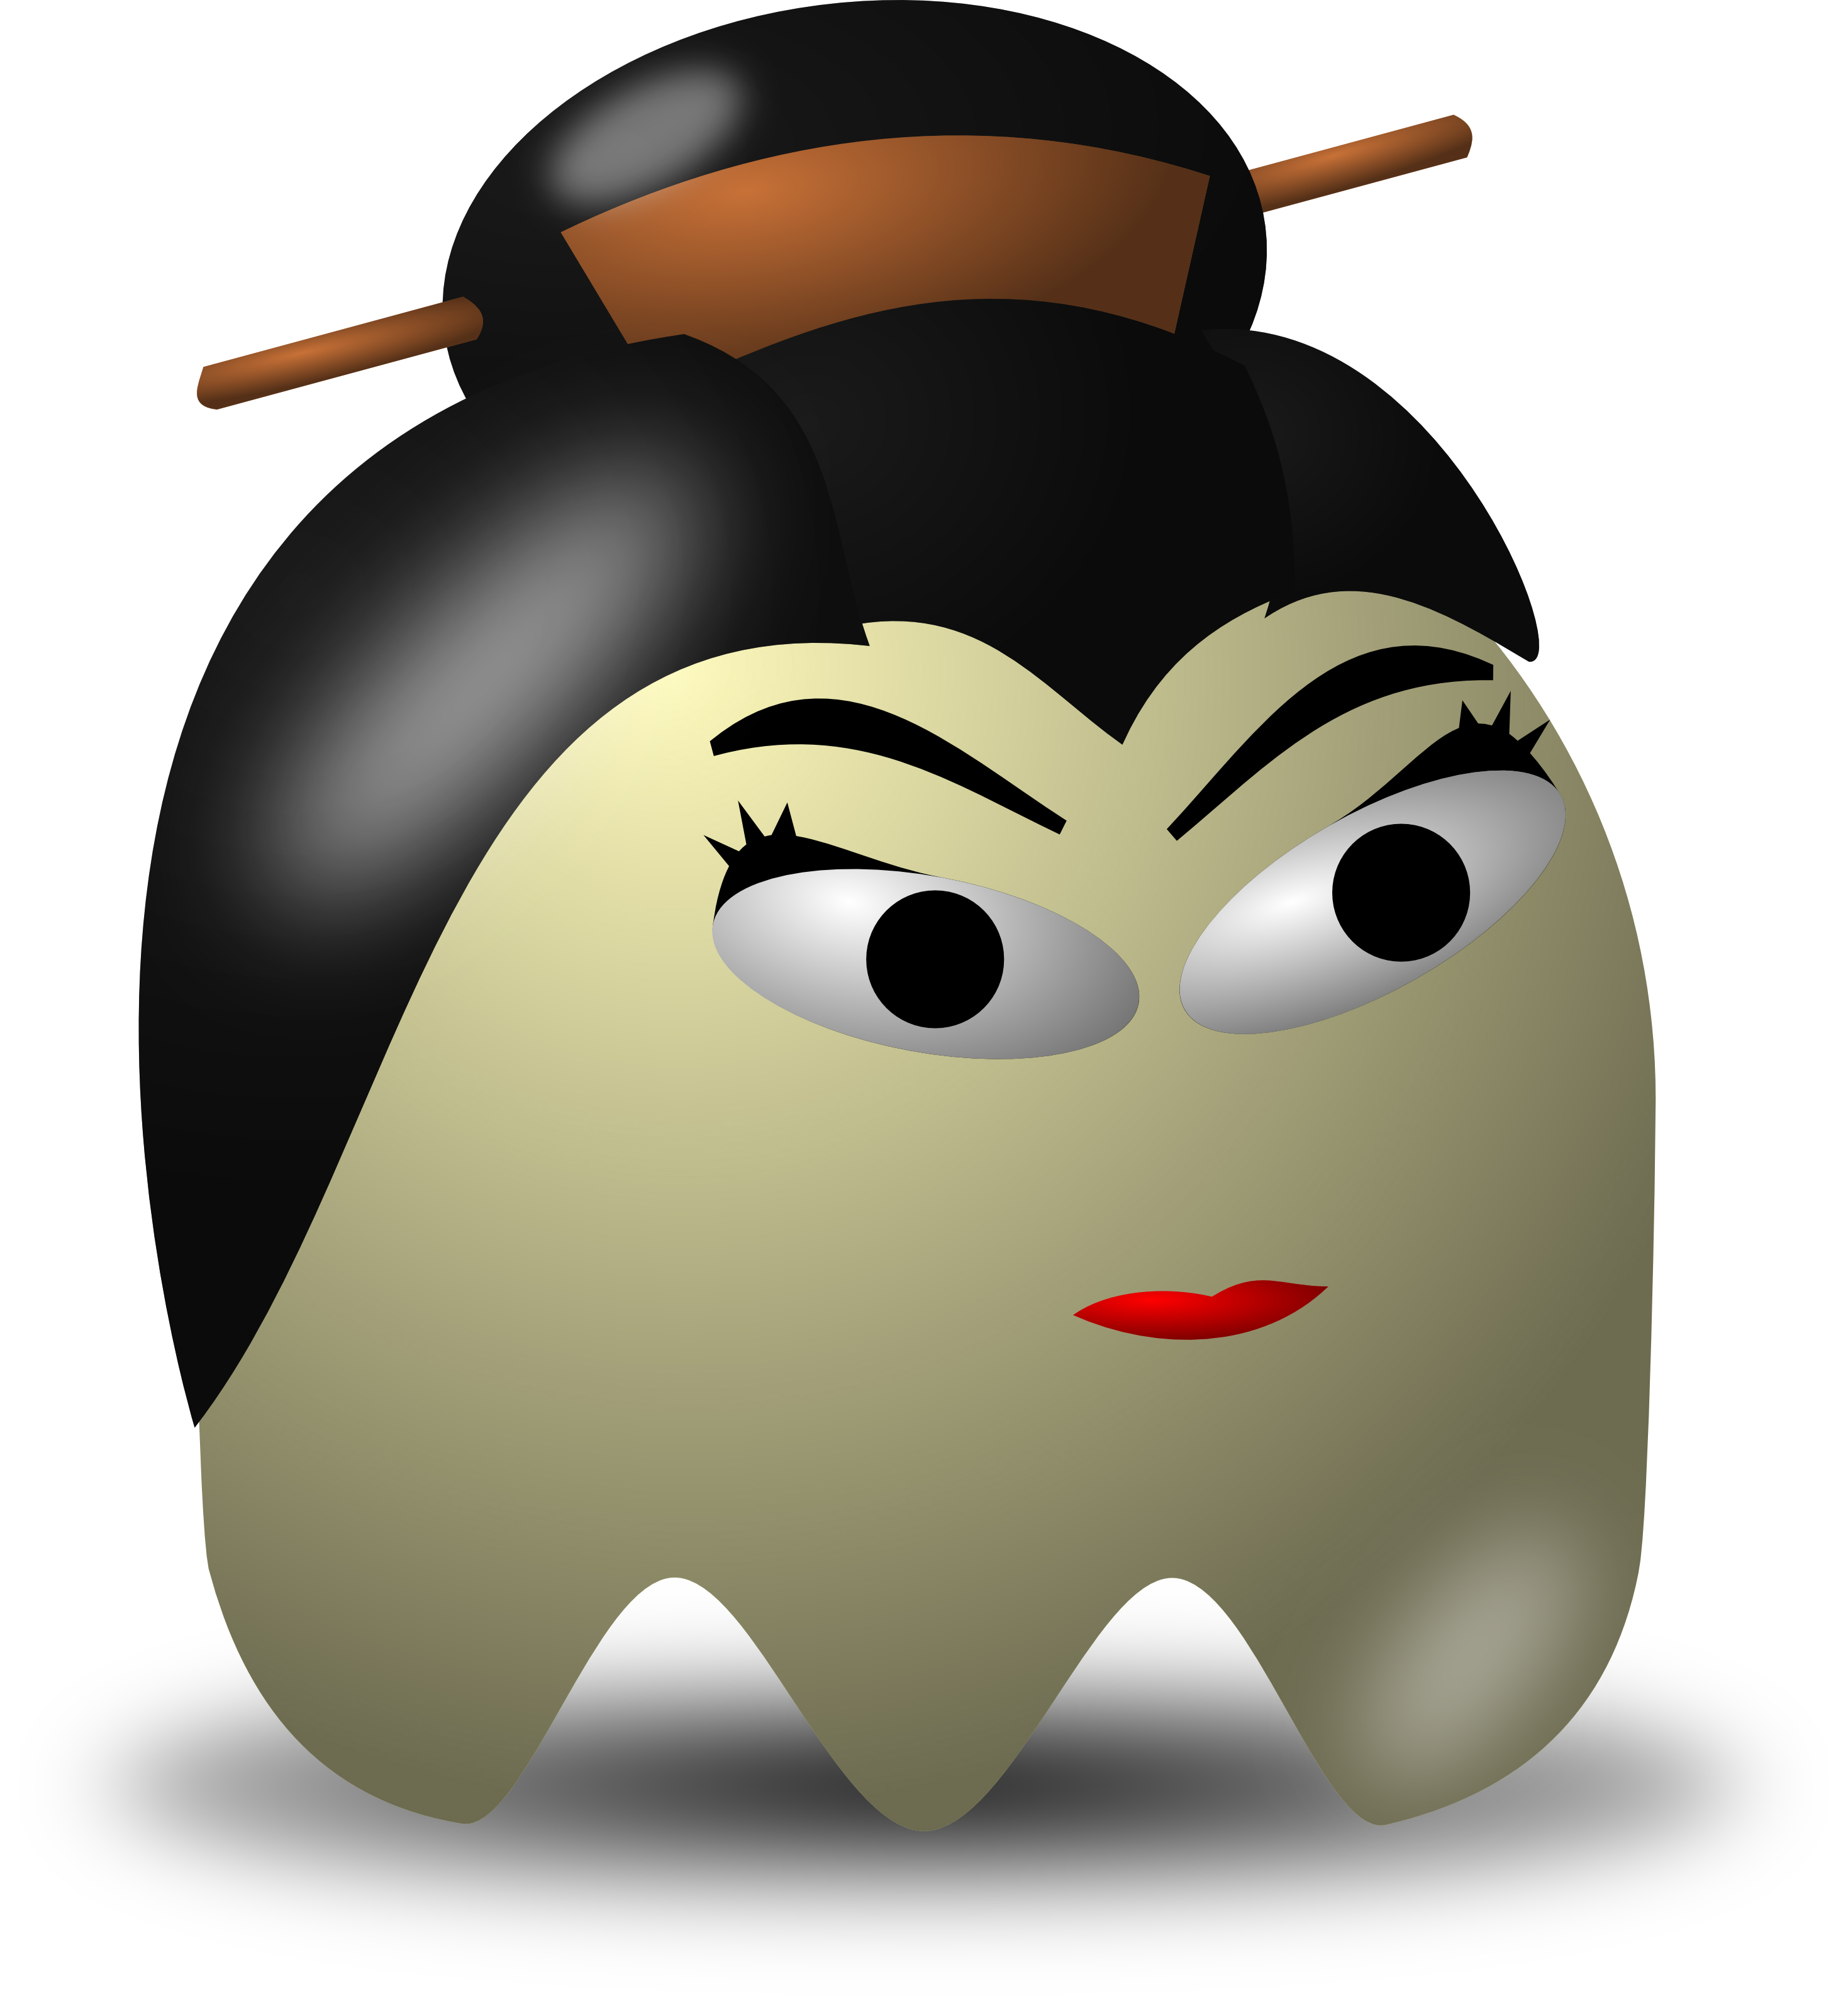 Avatar Clipart   Clipart Panda - Free Clipart Images